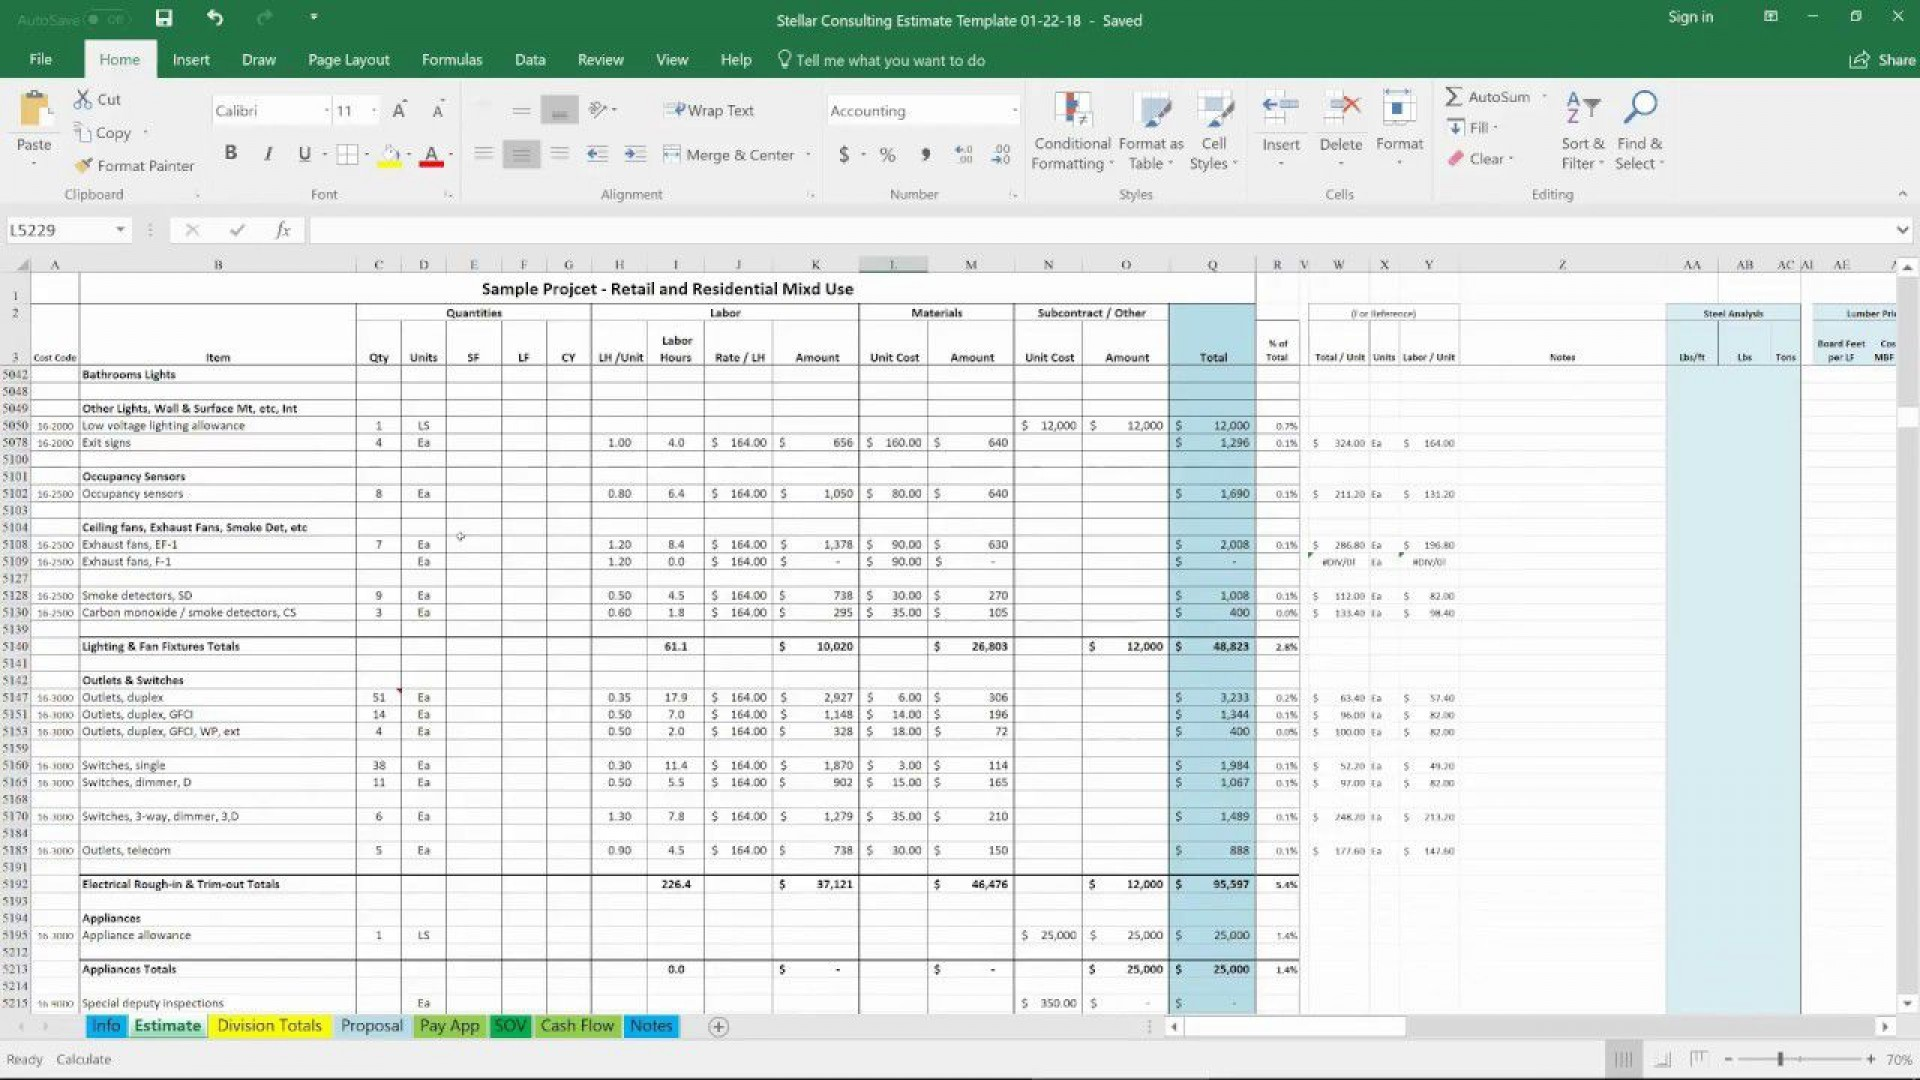 008 Wondrou Construction Estimating Spreadsheet Template High Def  Example Estimate Free Cost1920